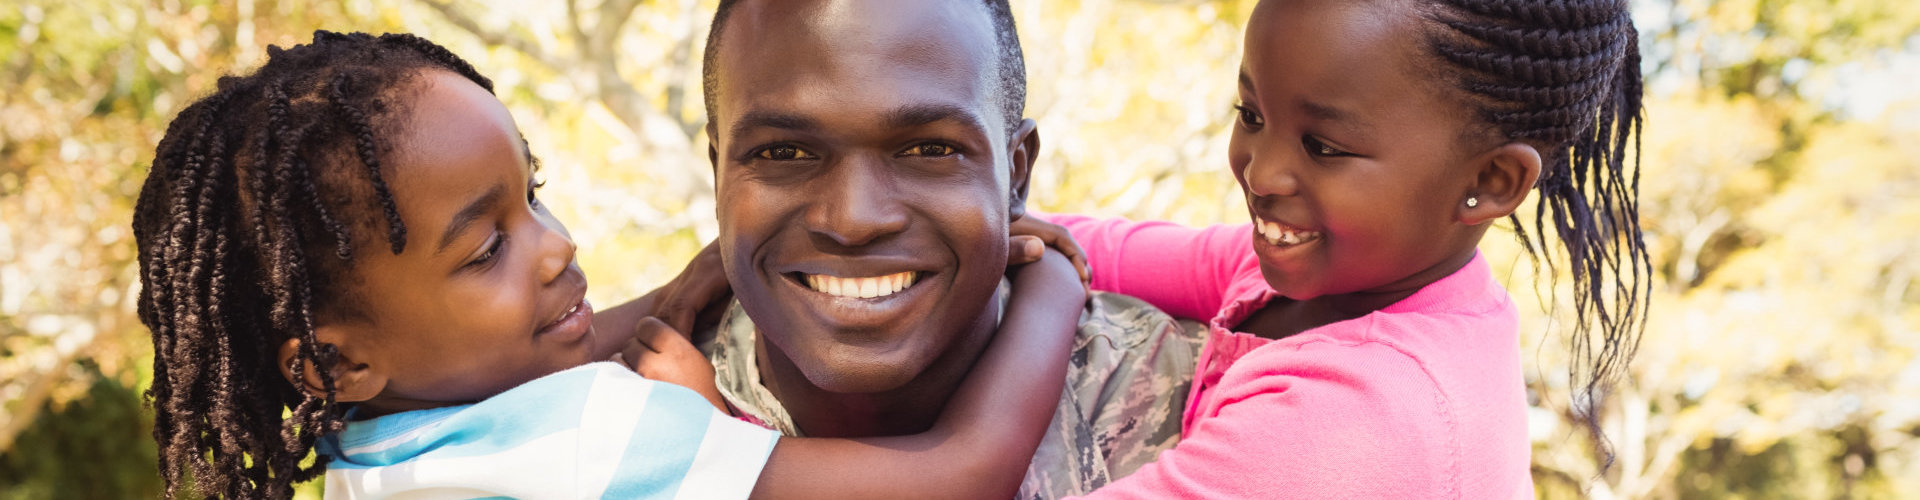 a veteran smiling with two kids